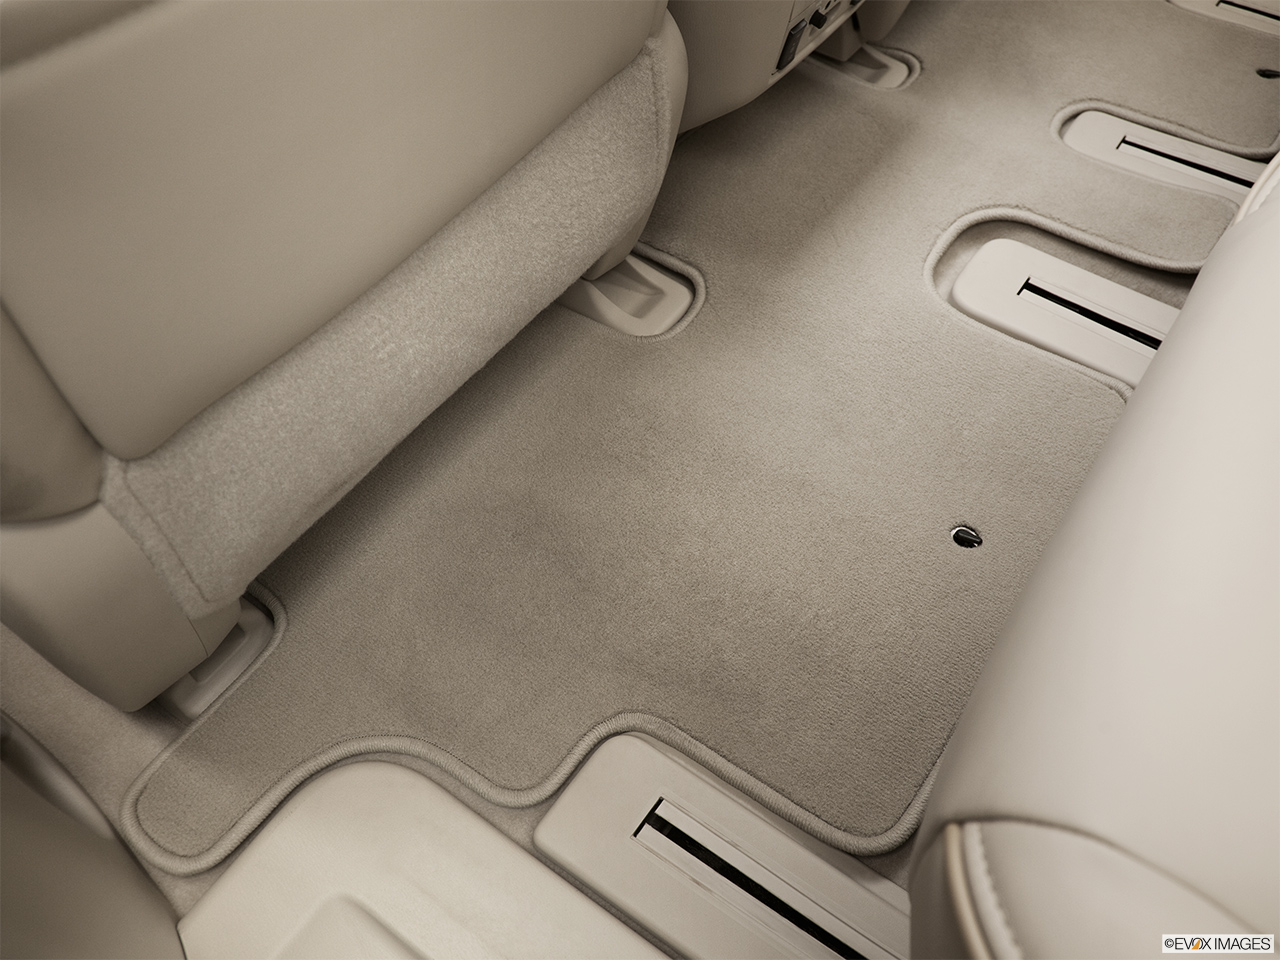 2013 Infiniti JX JX35 Rear driver's side floor mat. Mid-seat level from outside looking in.